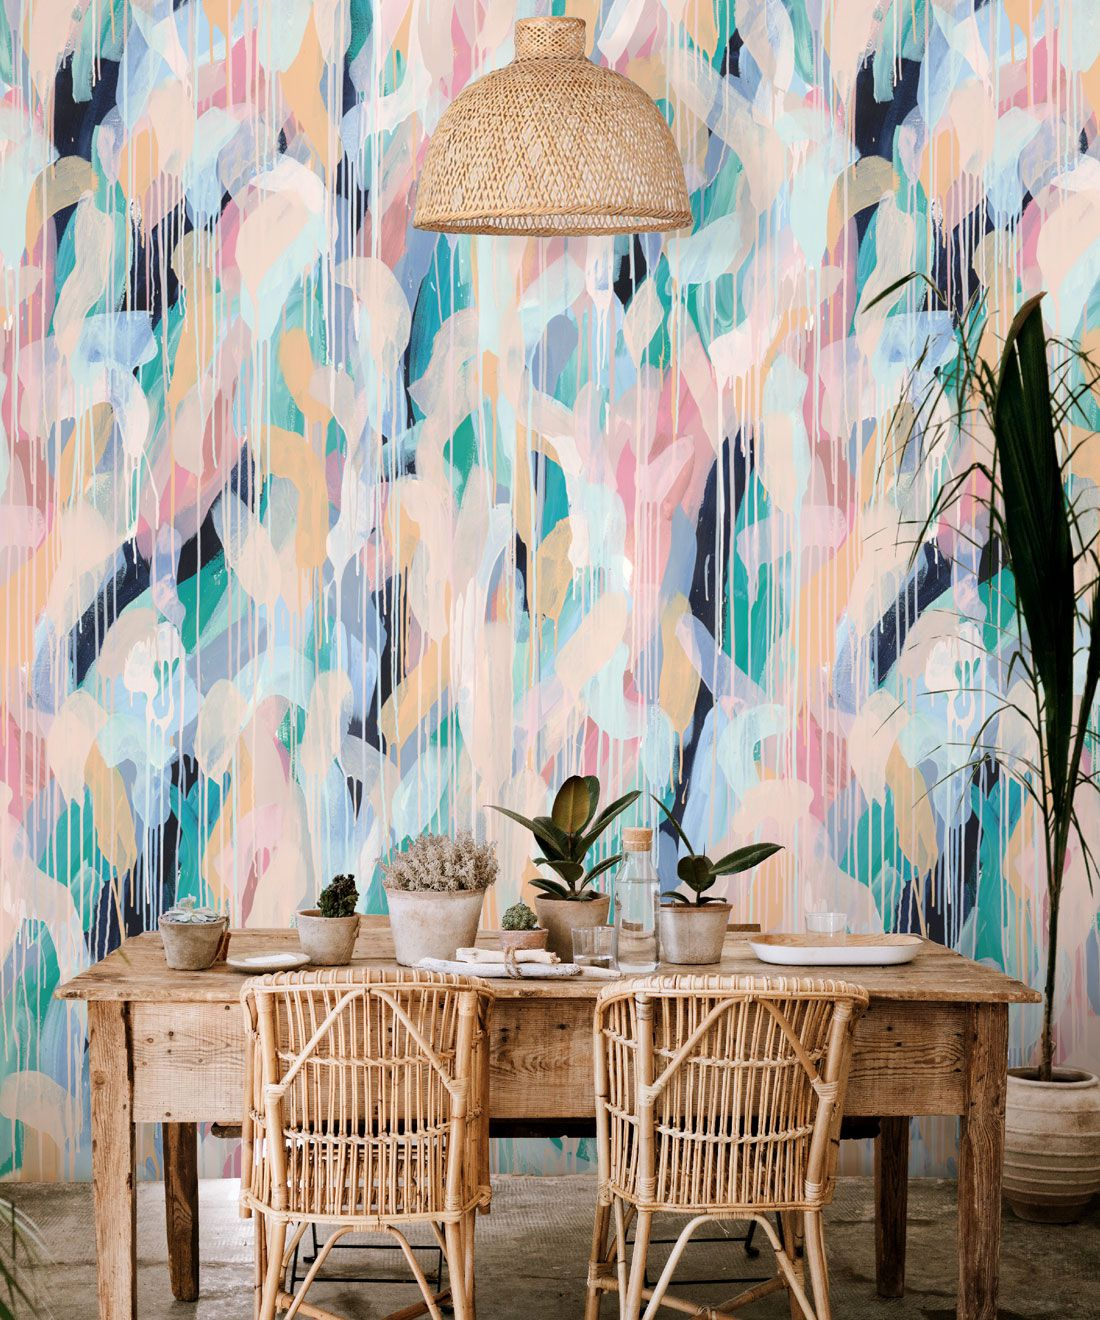 Blue Moon Wallpaper •Colorful Painterly Wallpaper • Tiff Manuell • Abstract Expressionist Wallpaper • Close Up Insitu